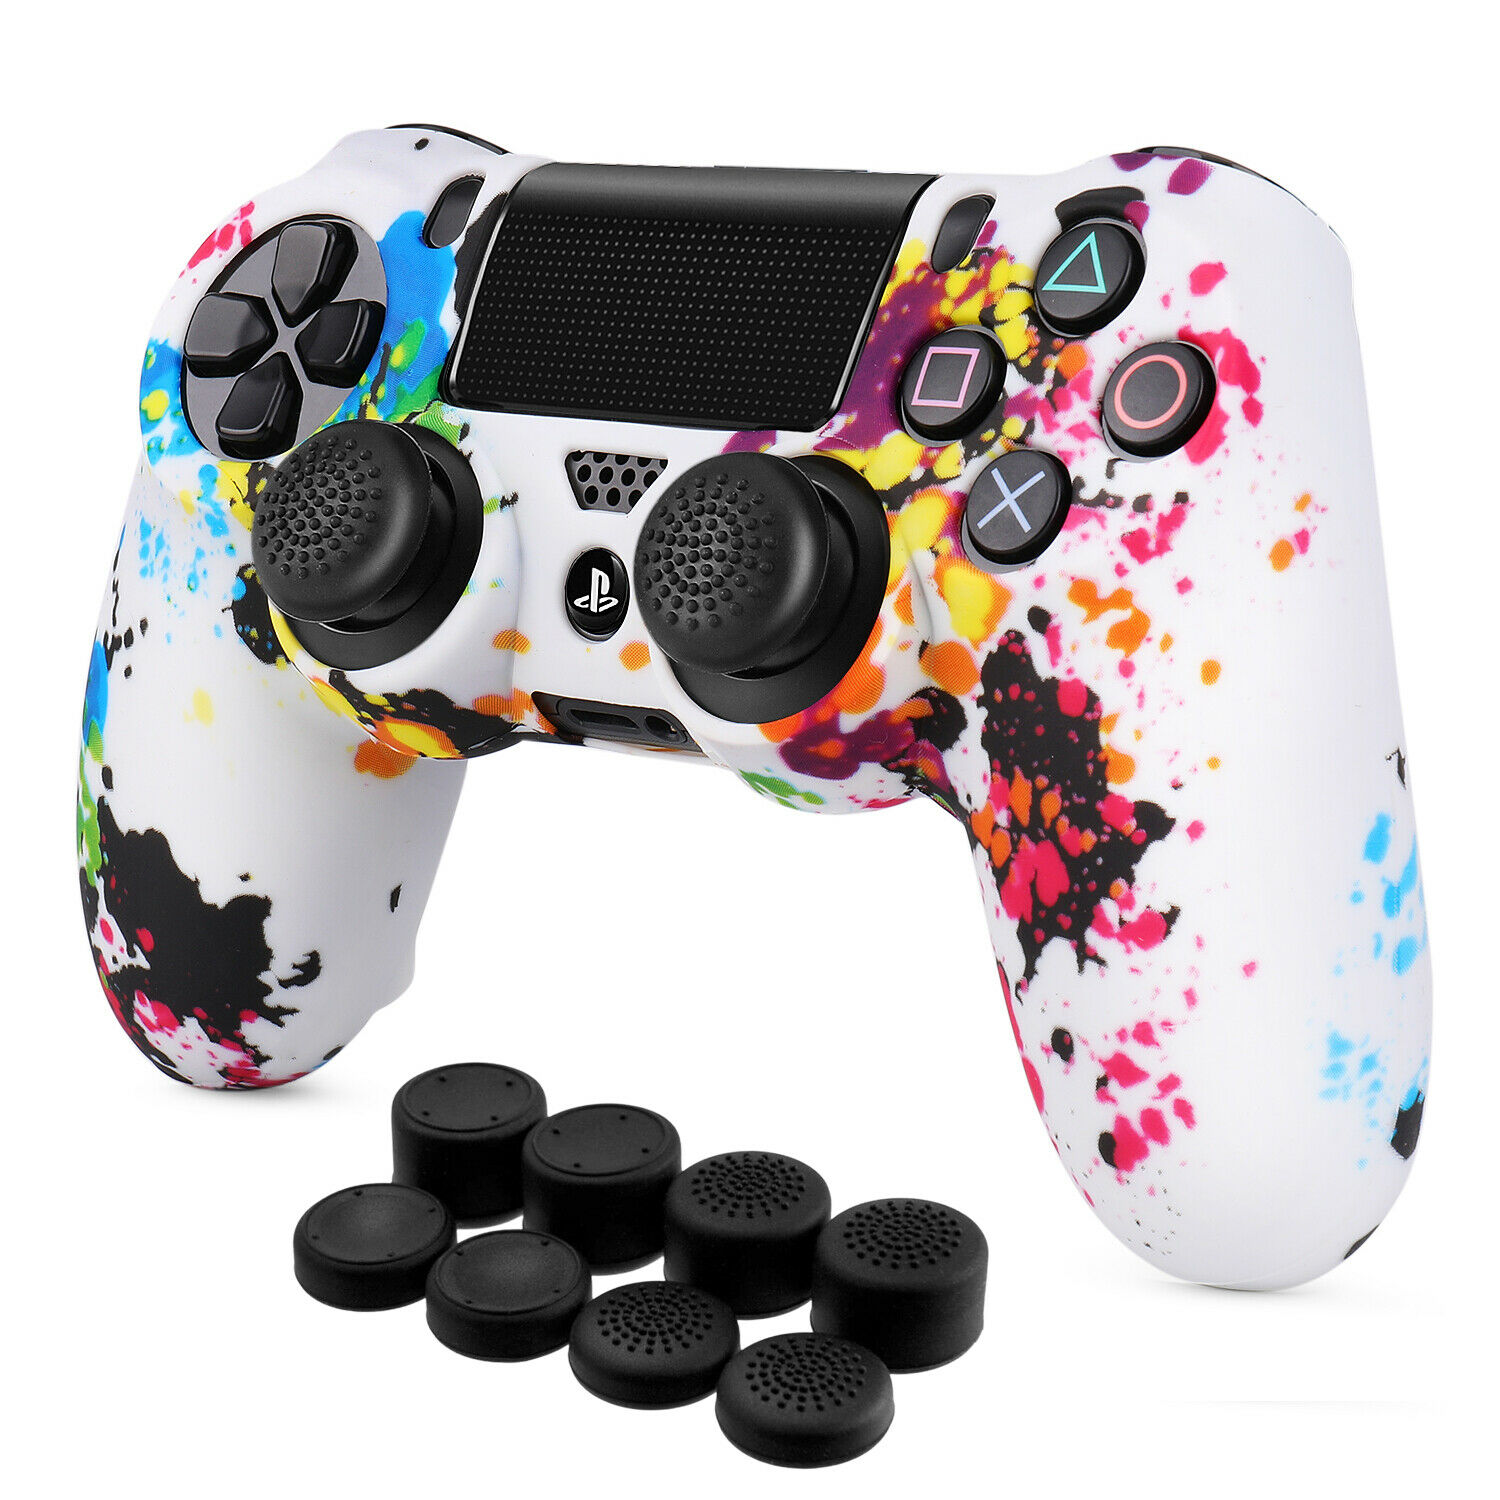 PS4 Controller Skin Grip Cover Silicone Gel Rubber Shell w/ Stick Cap, Splash